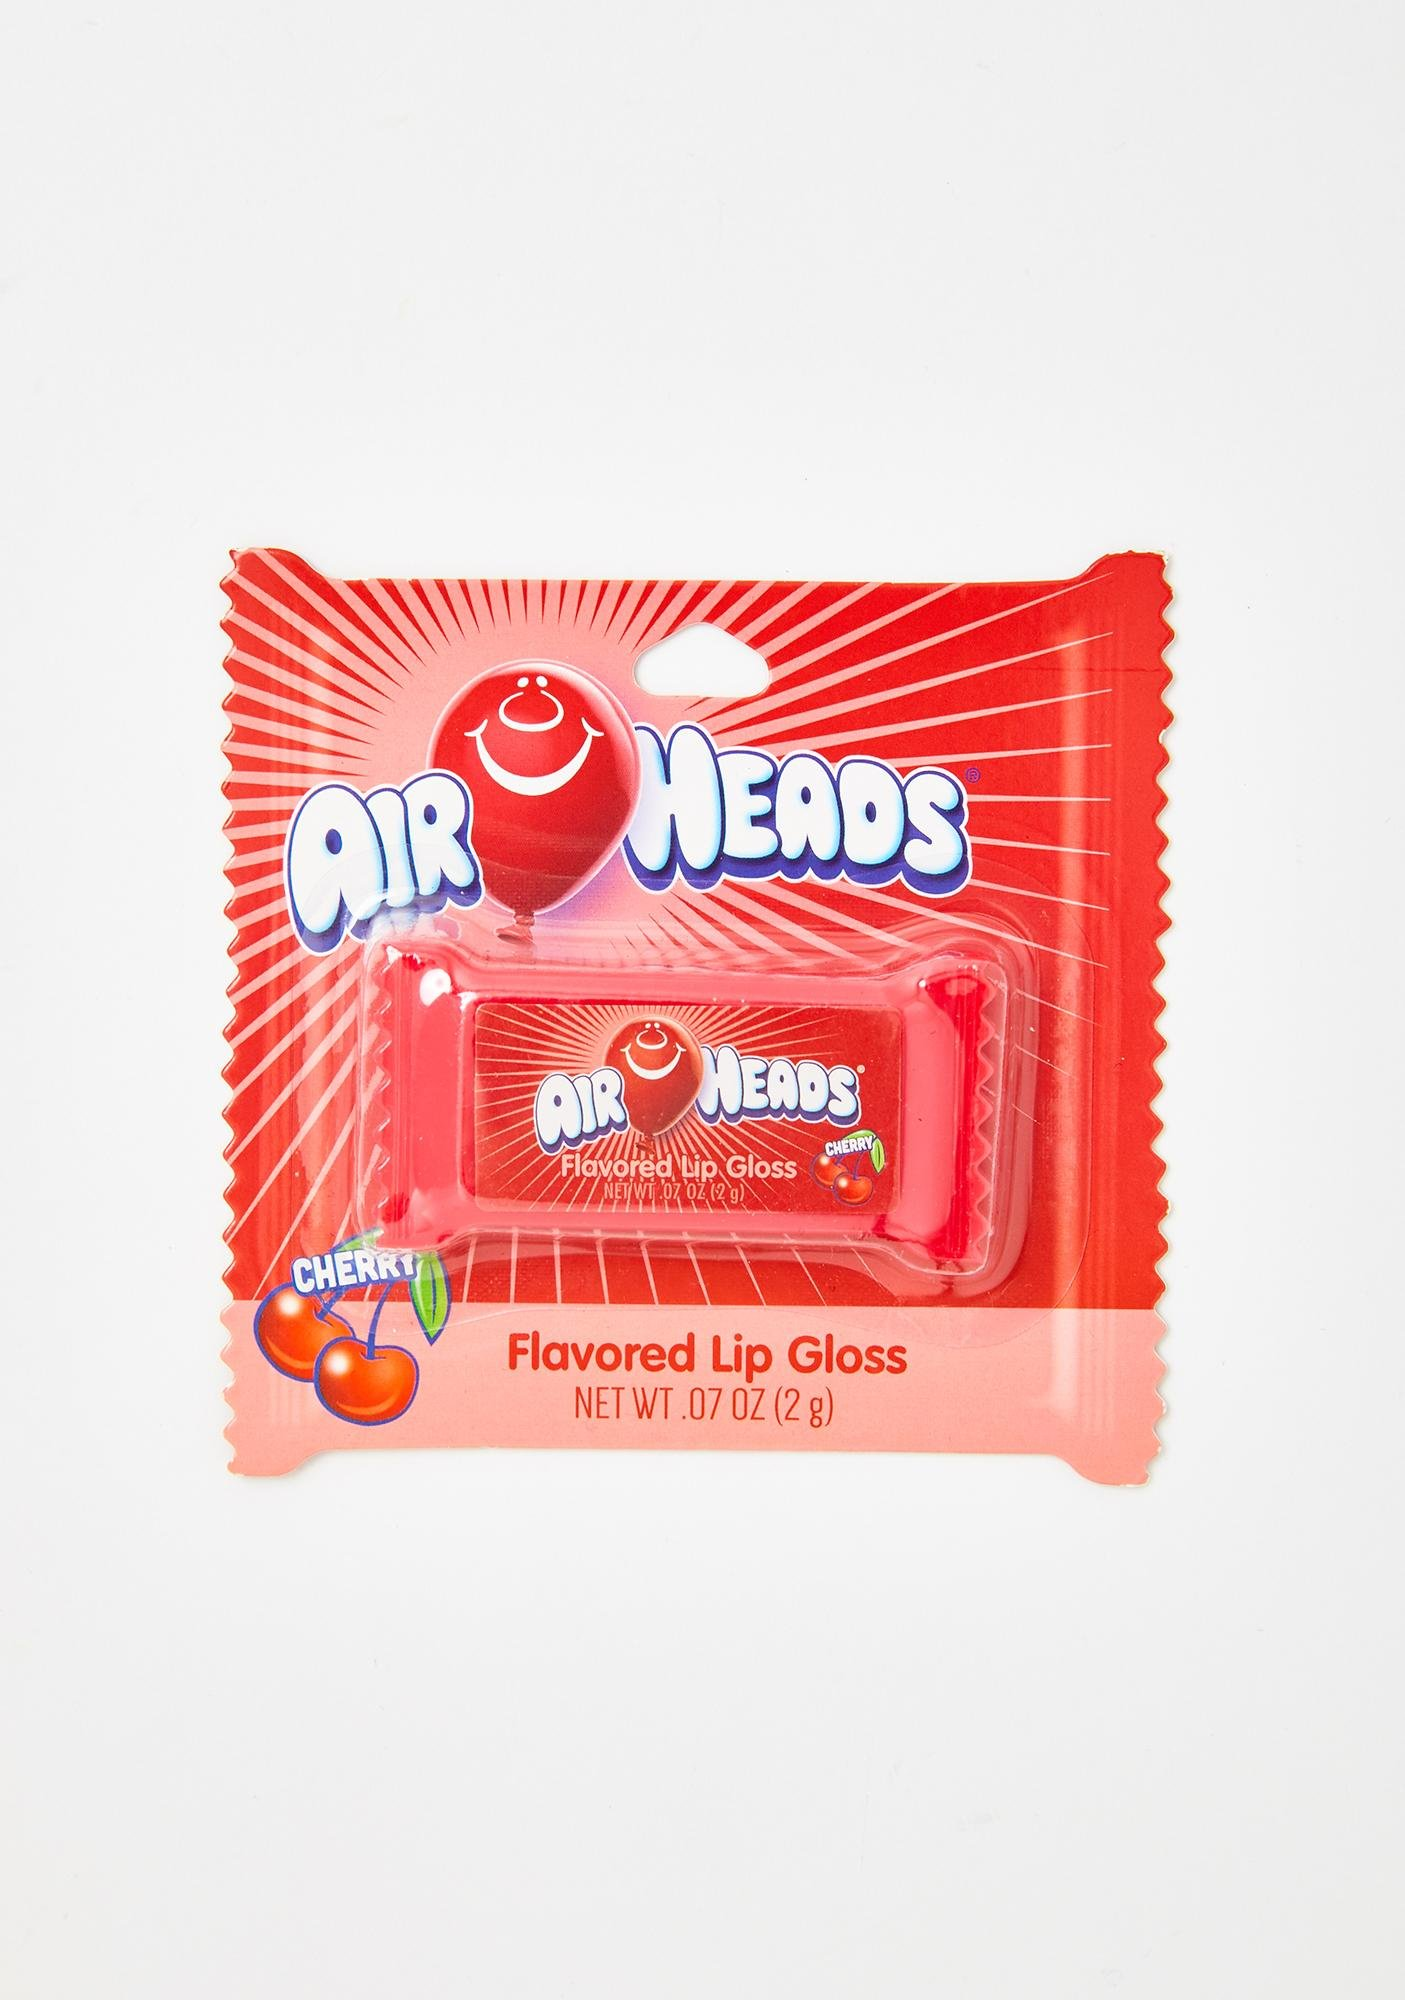 Taste Beauty Airheads Flavored Lip Gloss